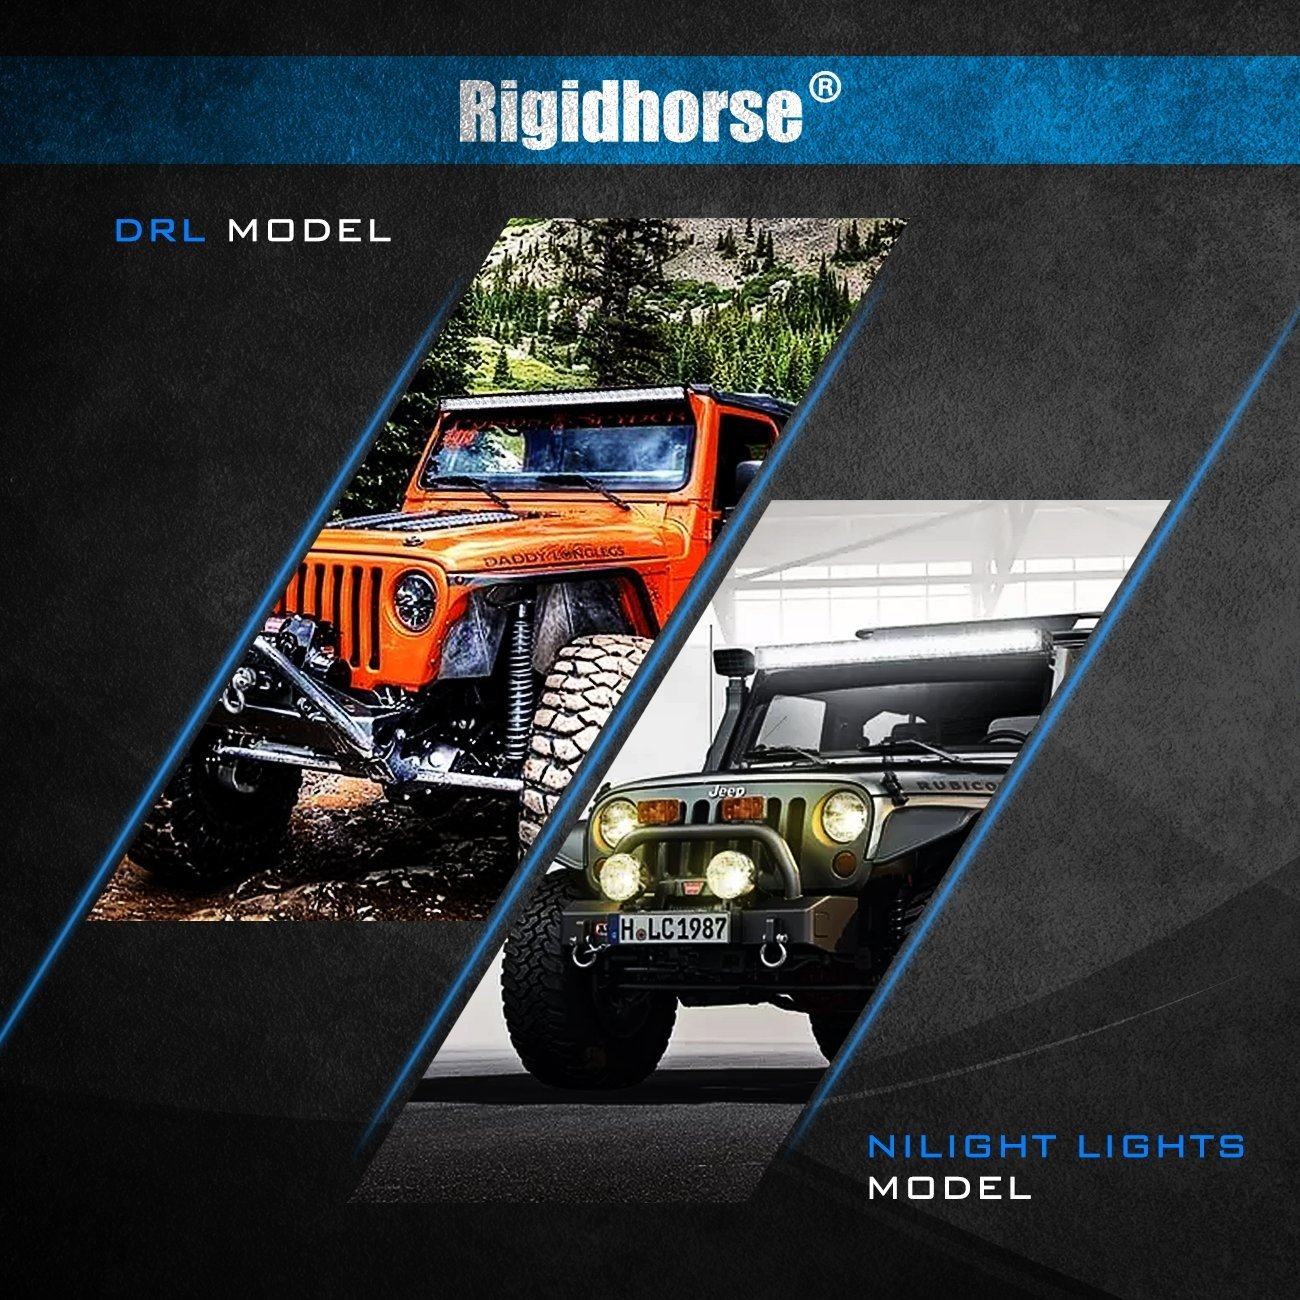 Wiring Harness Rigidhorse Remote Control Creating A Wire Kit For 8d Dual Mode Led Light Bar Universal Fitment Accessories Automotive